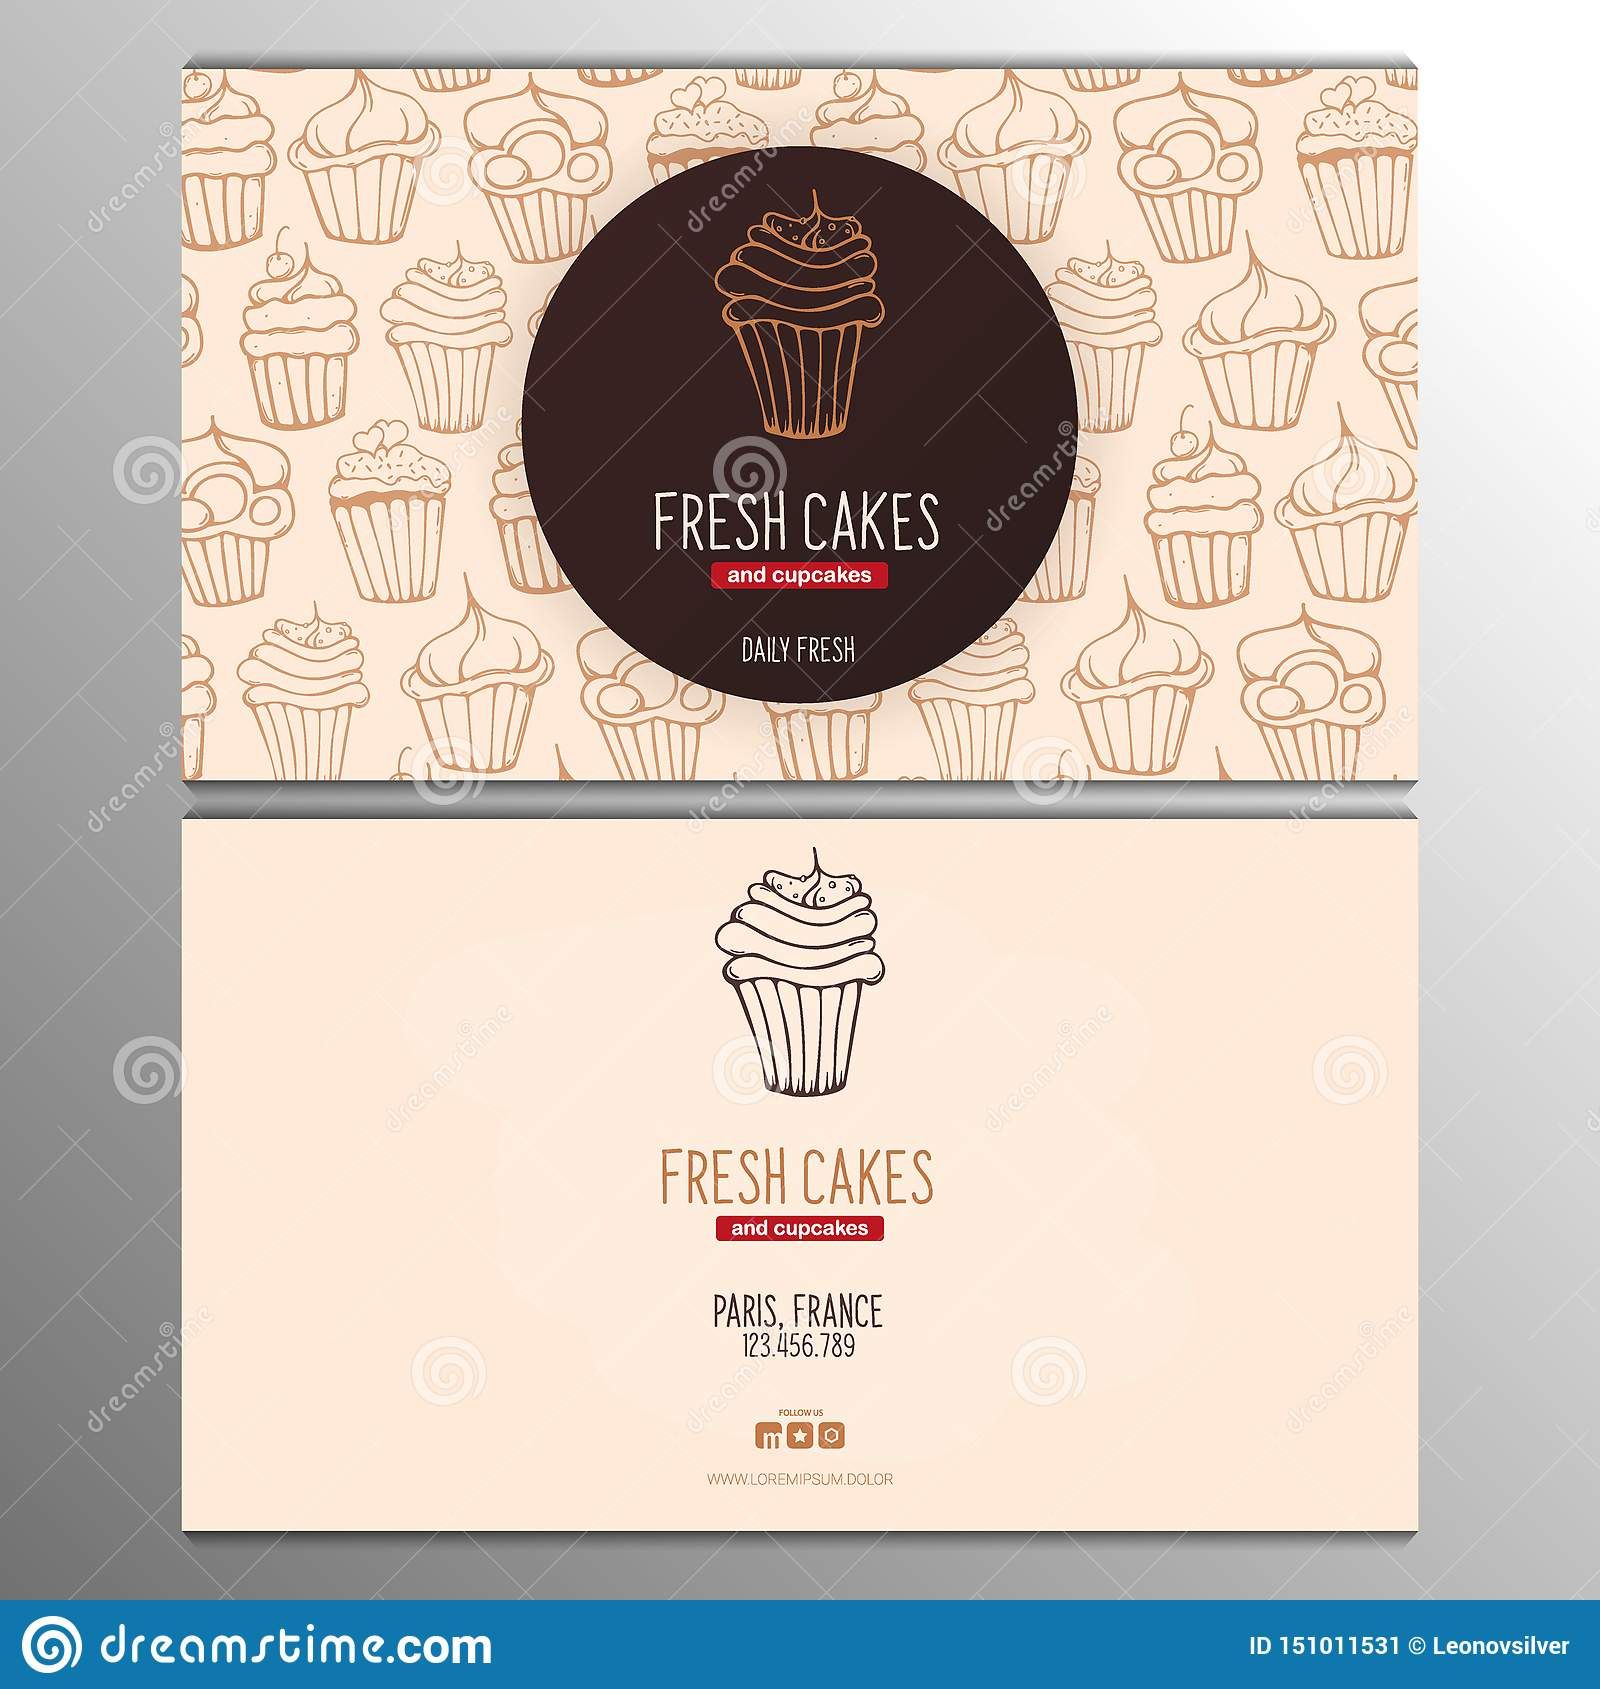 Cupcake Or Cake Business Card Template For Bakery Or Pastry Throughout Cake Business Bakery Business Cards Bakery Business Cards Templates Cake Business Cards